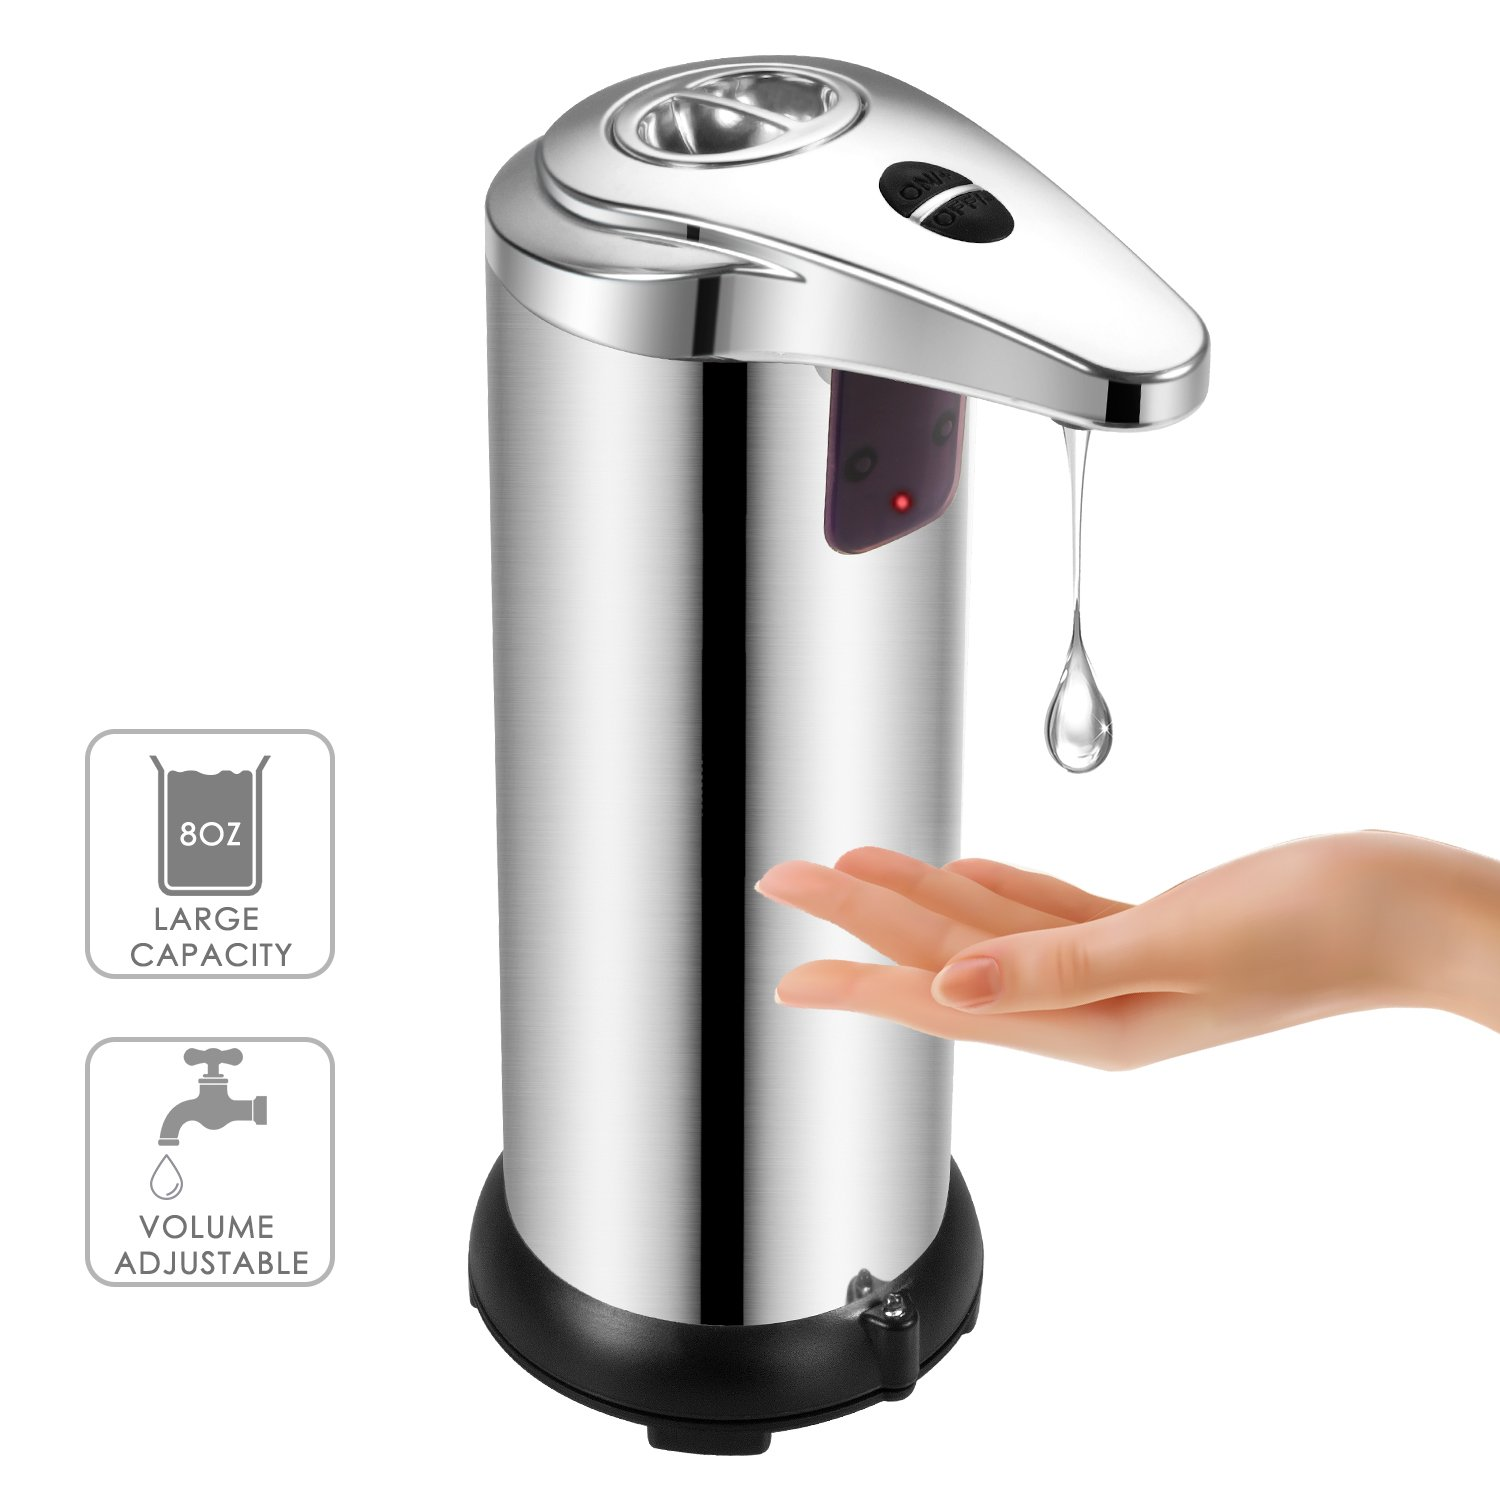 Soap Dispenser, BAFULAN Automatic Hand 280ml Sensor Soap Dispenser, Stainless Steel Hands-Free with Infrared Sensor Liquid Soap Dispenser, Waterproof Designed for Bathroom Kitchen Powered by 4 PCS AAA